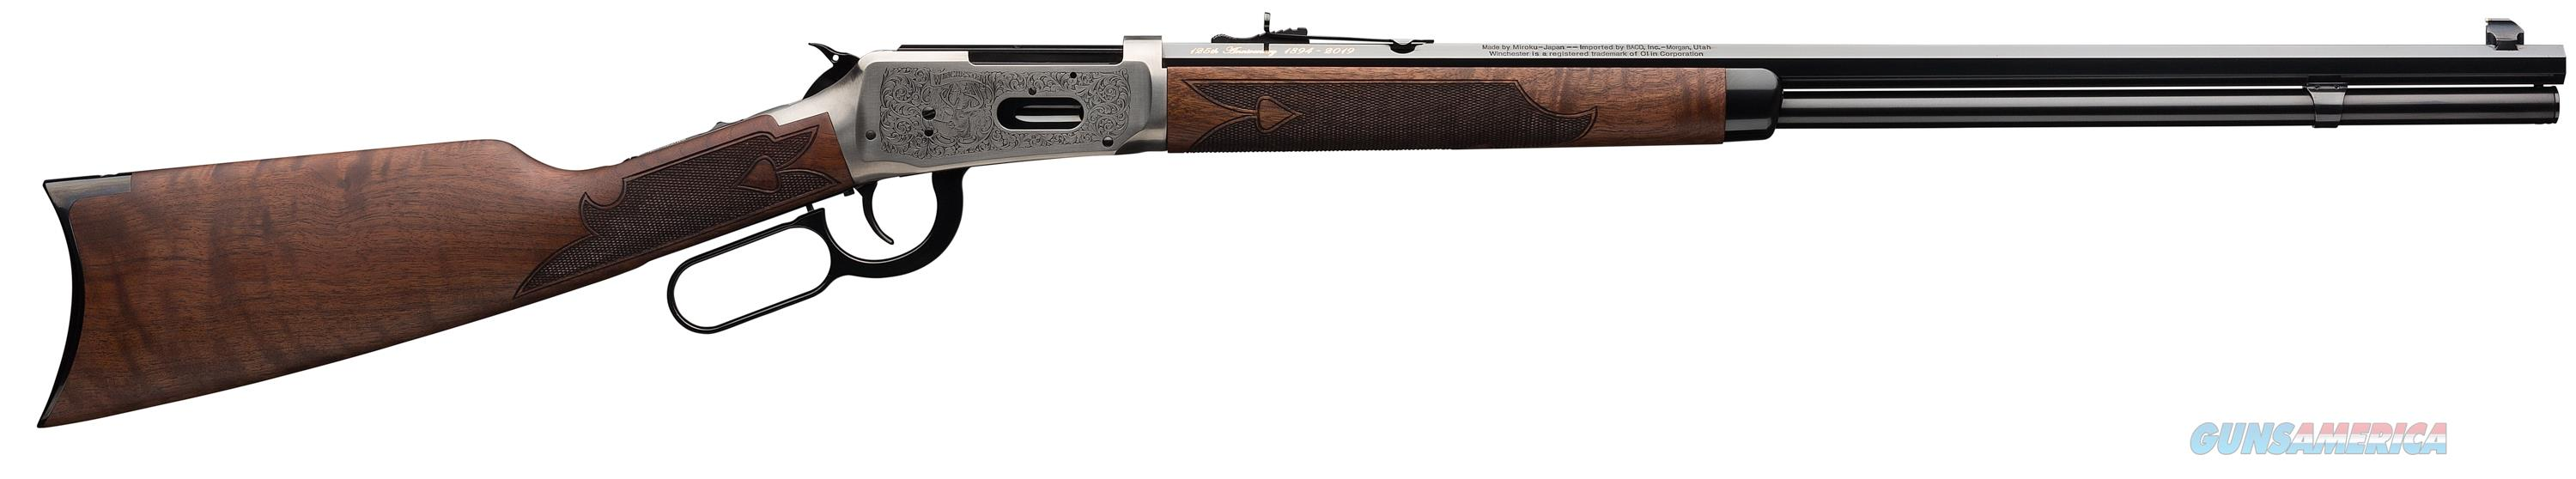 "Winchester Model 94 125th Anniversary High Grade .30-30 Win 24"" 534268114   Guns > Rifles > Winchester Rifles - Modern Lever > Model 94 > Post-64"